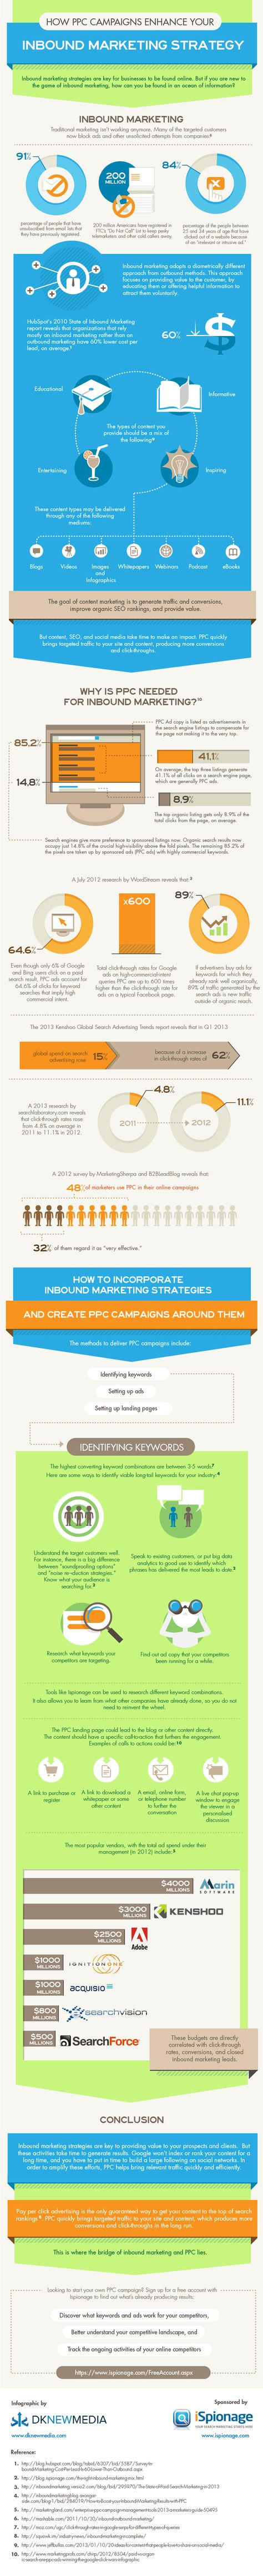 How PPC Campaigns Can Enhance Your Inbound Marketing Strategy [Infographic]